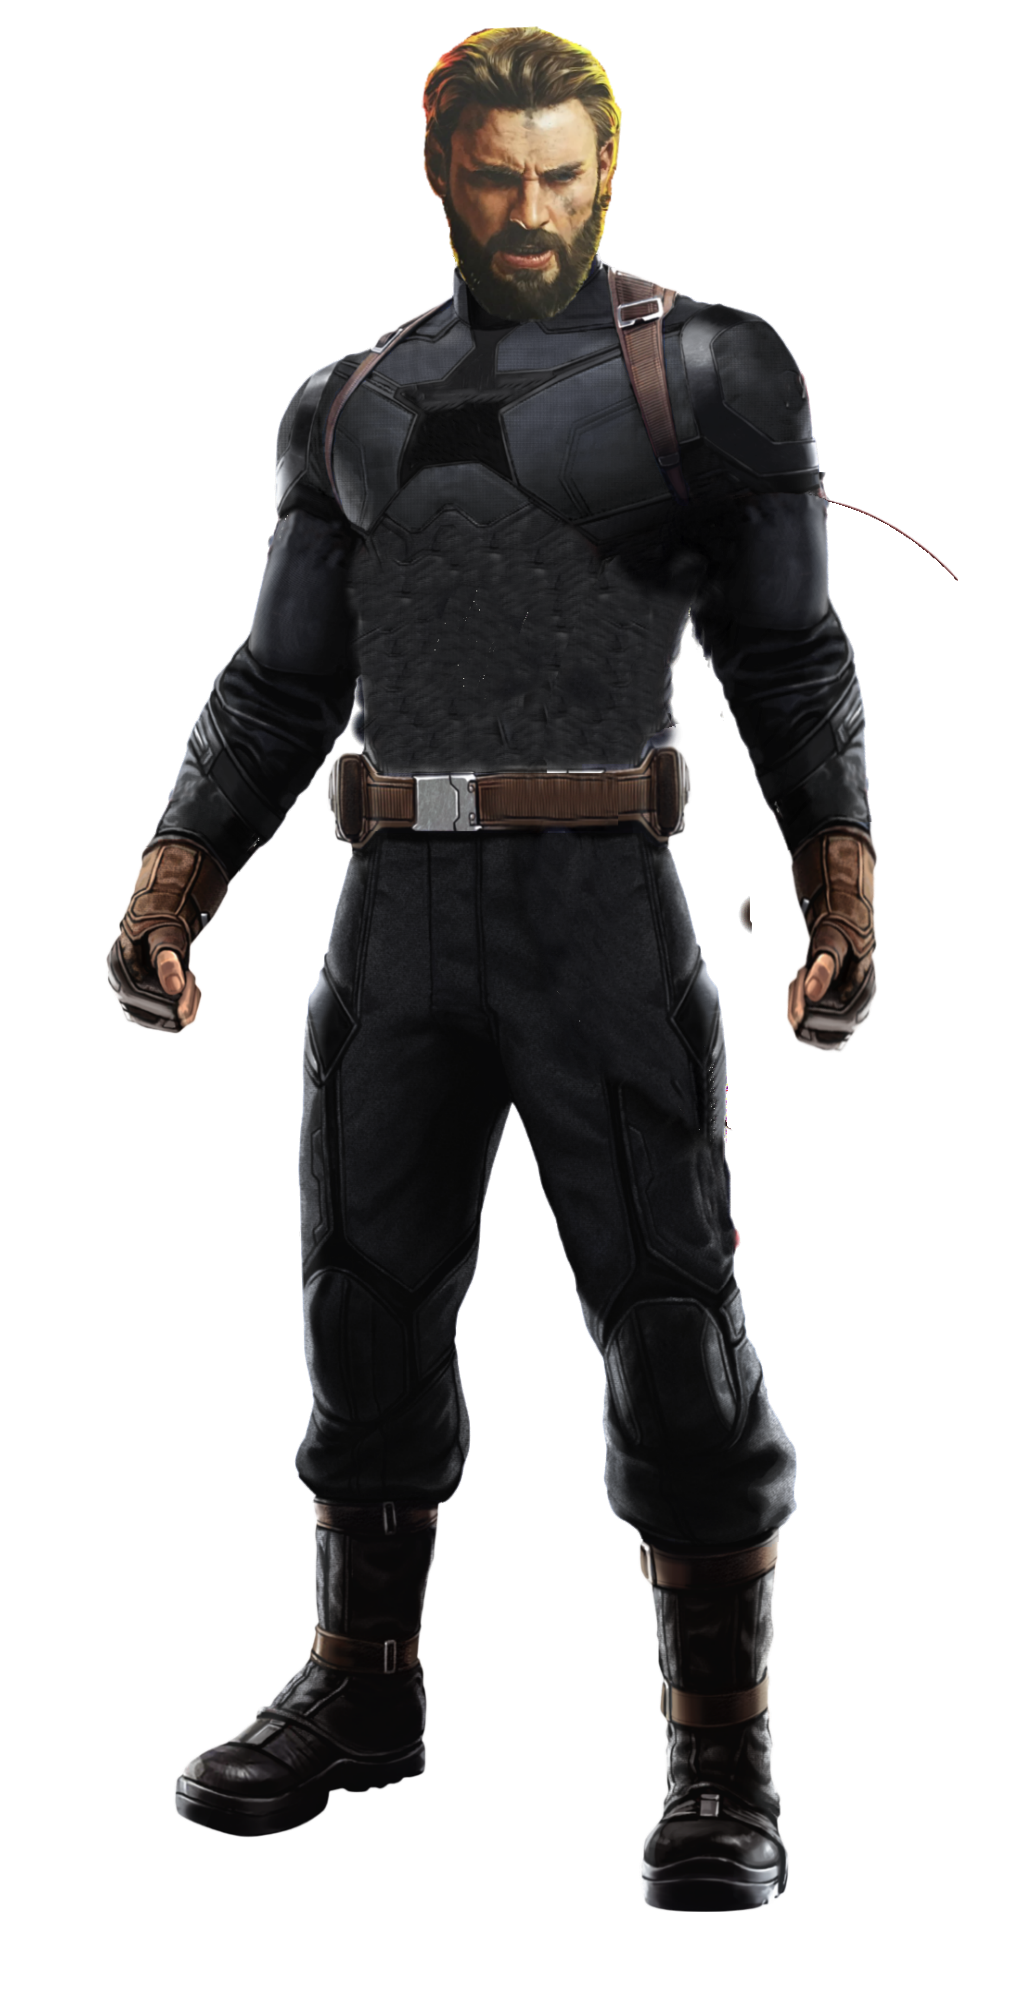 Nomad Costume Based On Infinity War Posters Infinitywar Post Infinity War Thor Ragnarok Costume Costumes